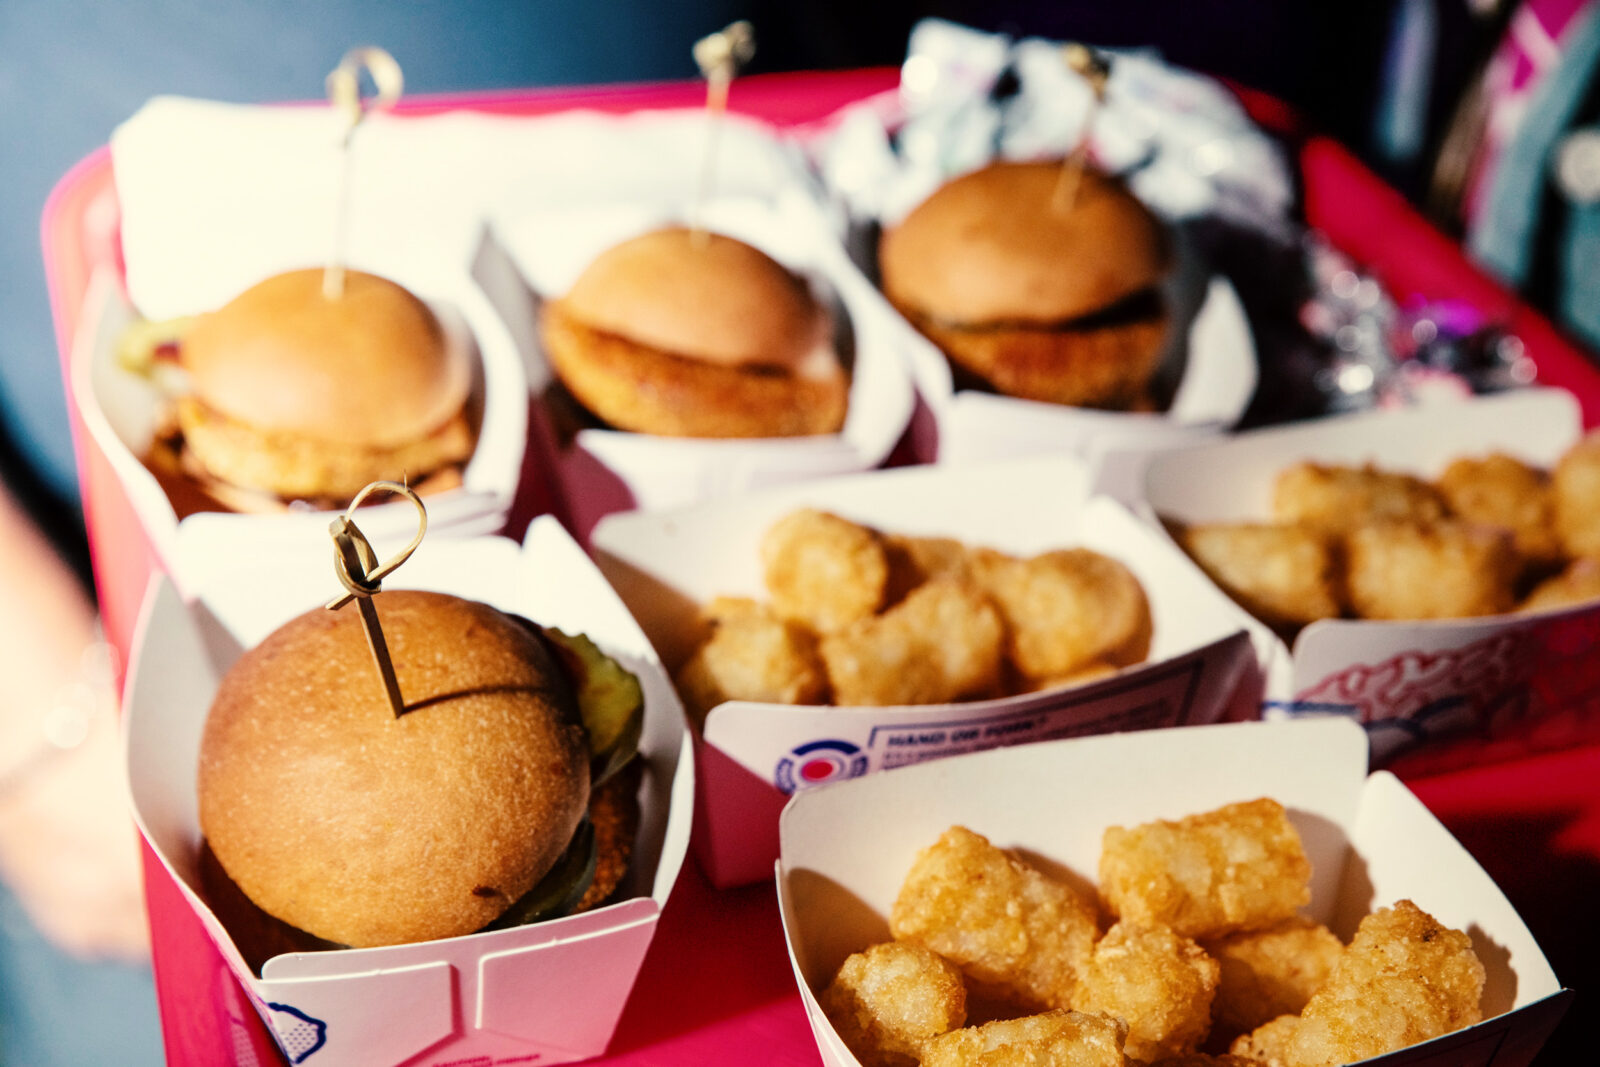 sliders and tater tots at sonic experiential marketing event